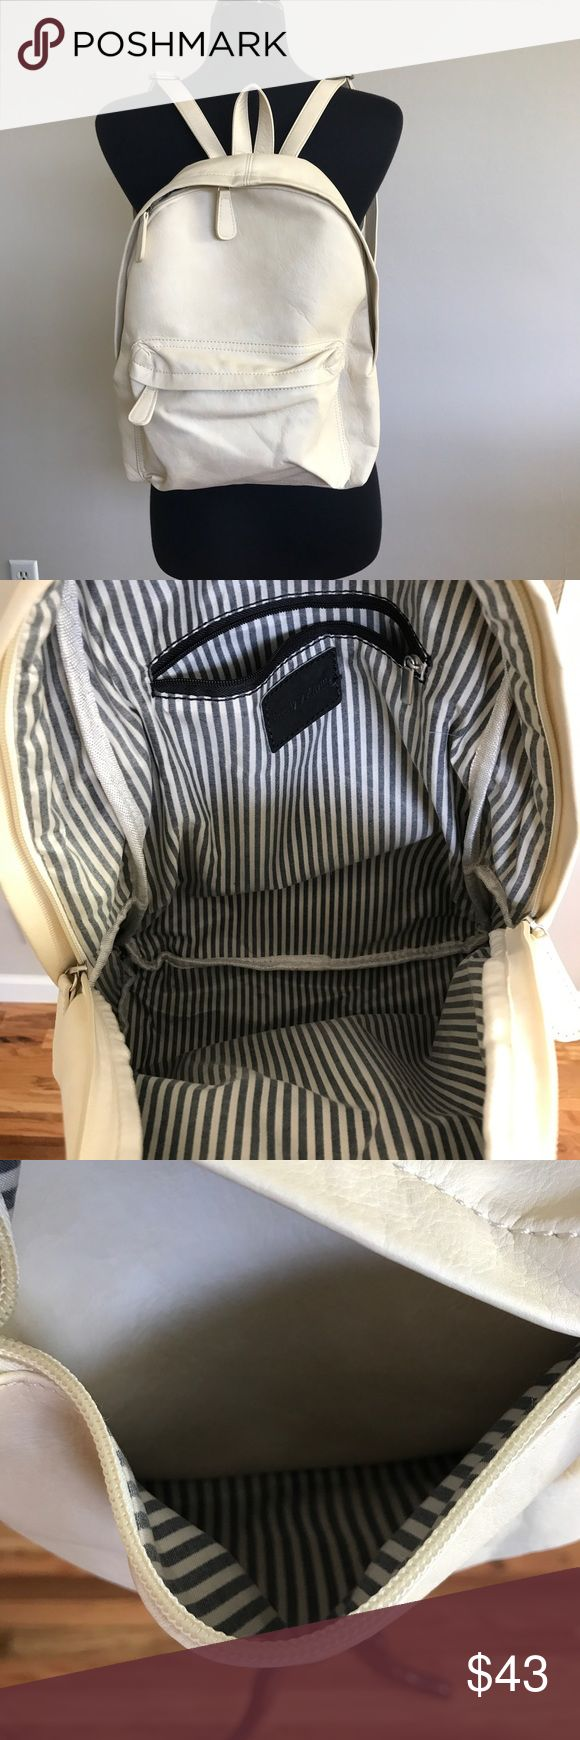 Brandy Melville Cream Backpack Soft Faux Leather Brandy Melville Cream Backpack Soft Faux Leather. Excellent used condition, like new. Gray and white Striped Inner lining, no stains. Inner zip pocket. 14x 11x 3.5. Straps are adjustable. Brandy Melville Bags Backpacks